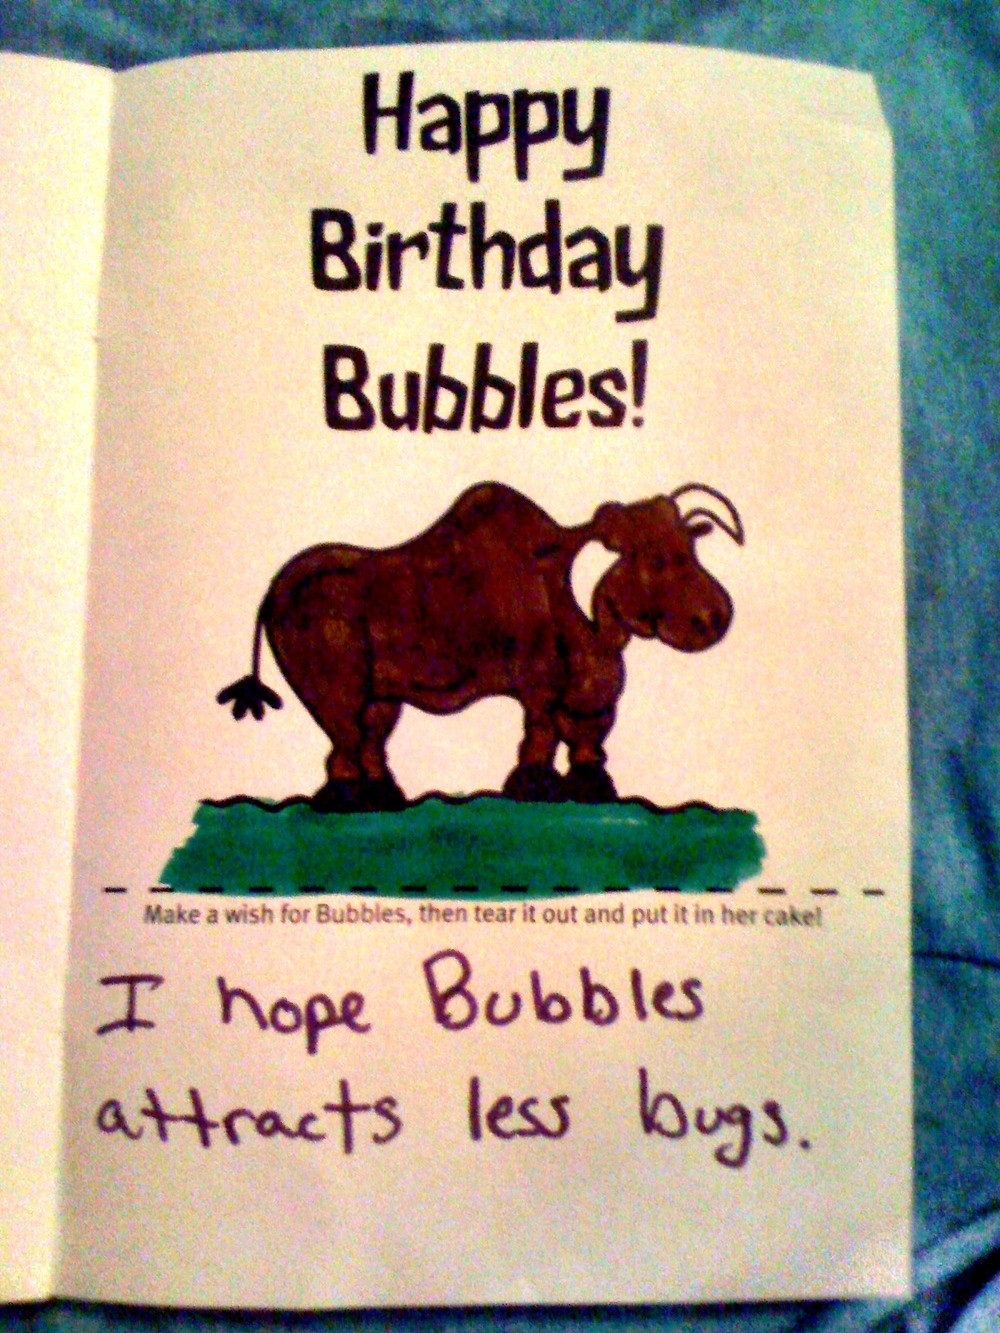 "And now a selection of some of the best of Bubbles' birthday wishes… Let's start out with this one. ""I hope Bubbles attracts less bugs."" Who wouldn't want to attract less bugs for her birthday?"